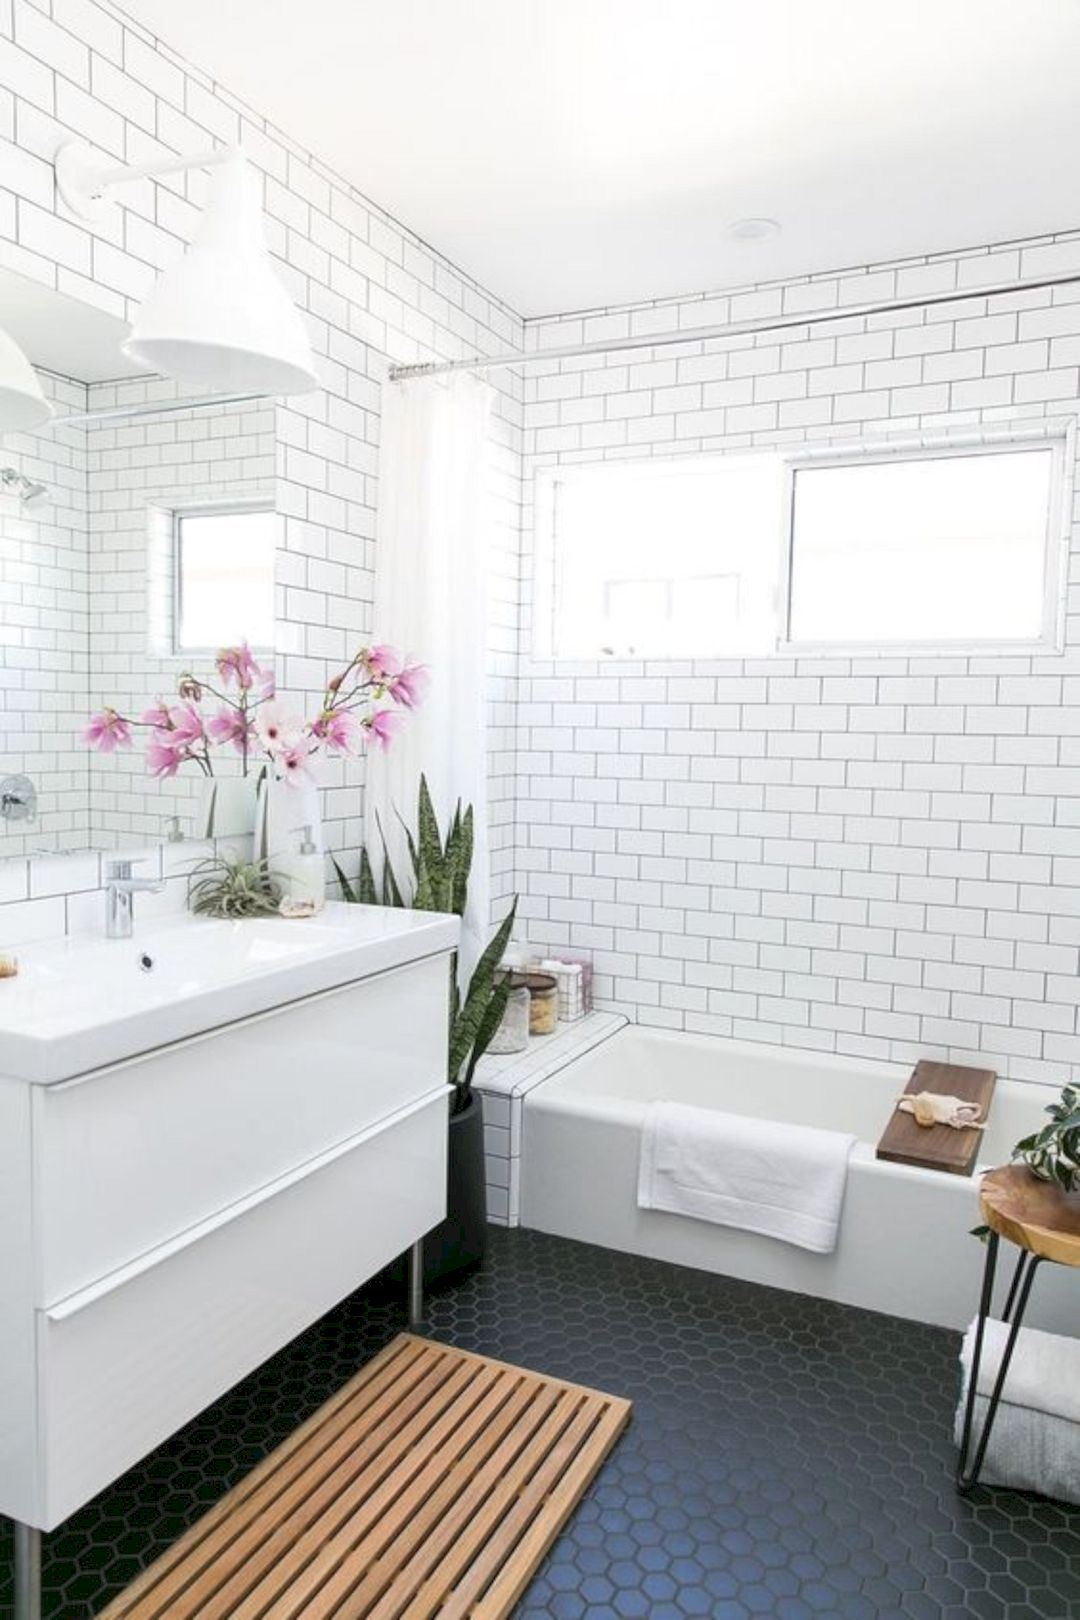 15 Inspiring Bathroom Design Ideas with IKEA | Gorgeous Interior ...